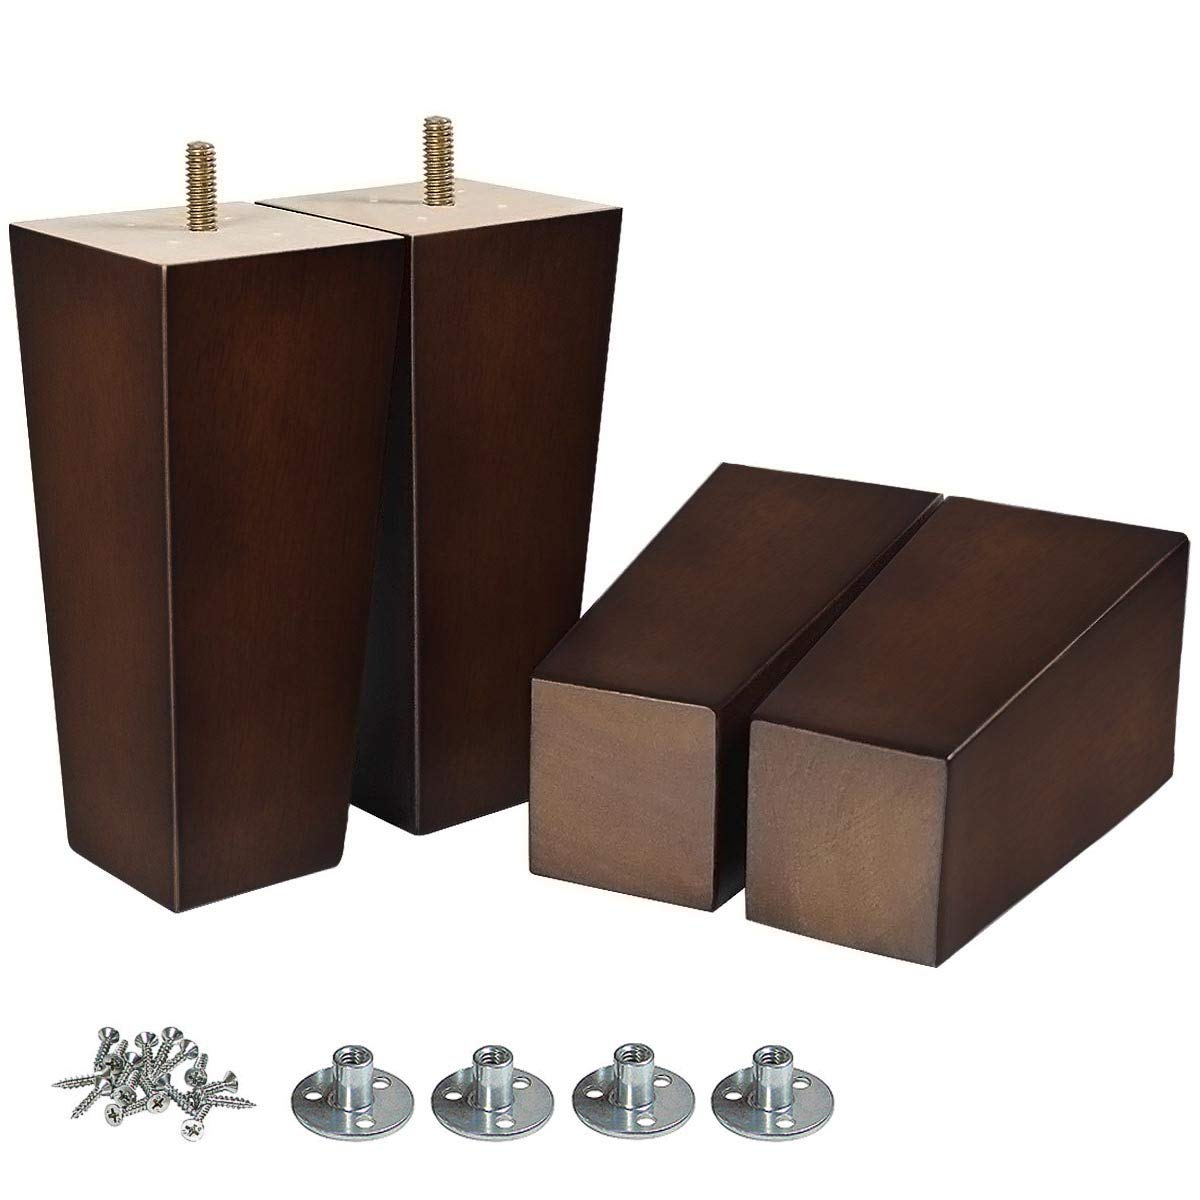 AORYVIC 6 inch Sofa Legs Wood Furniture Legs Pack of 4 Pyramid Couch Legs Mid-Century Modern Brown Replacement Legs for Chair Recliner by AORYVIC